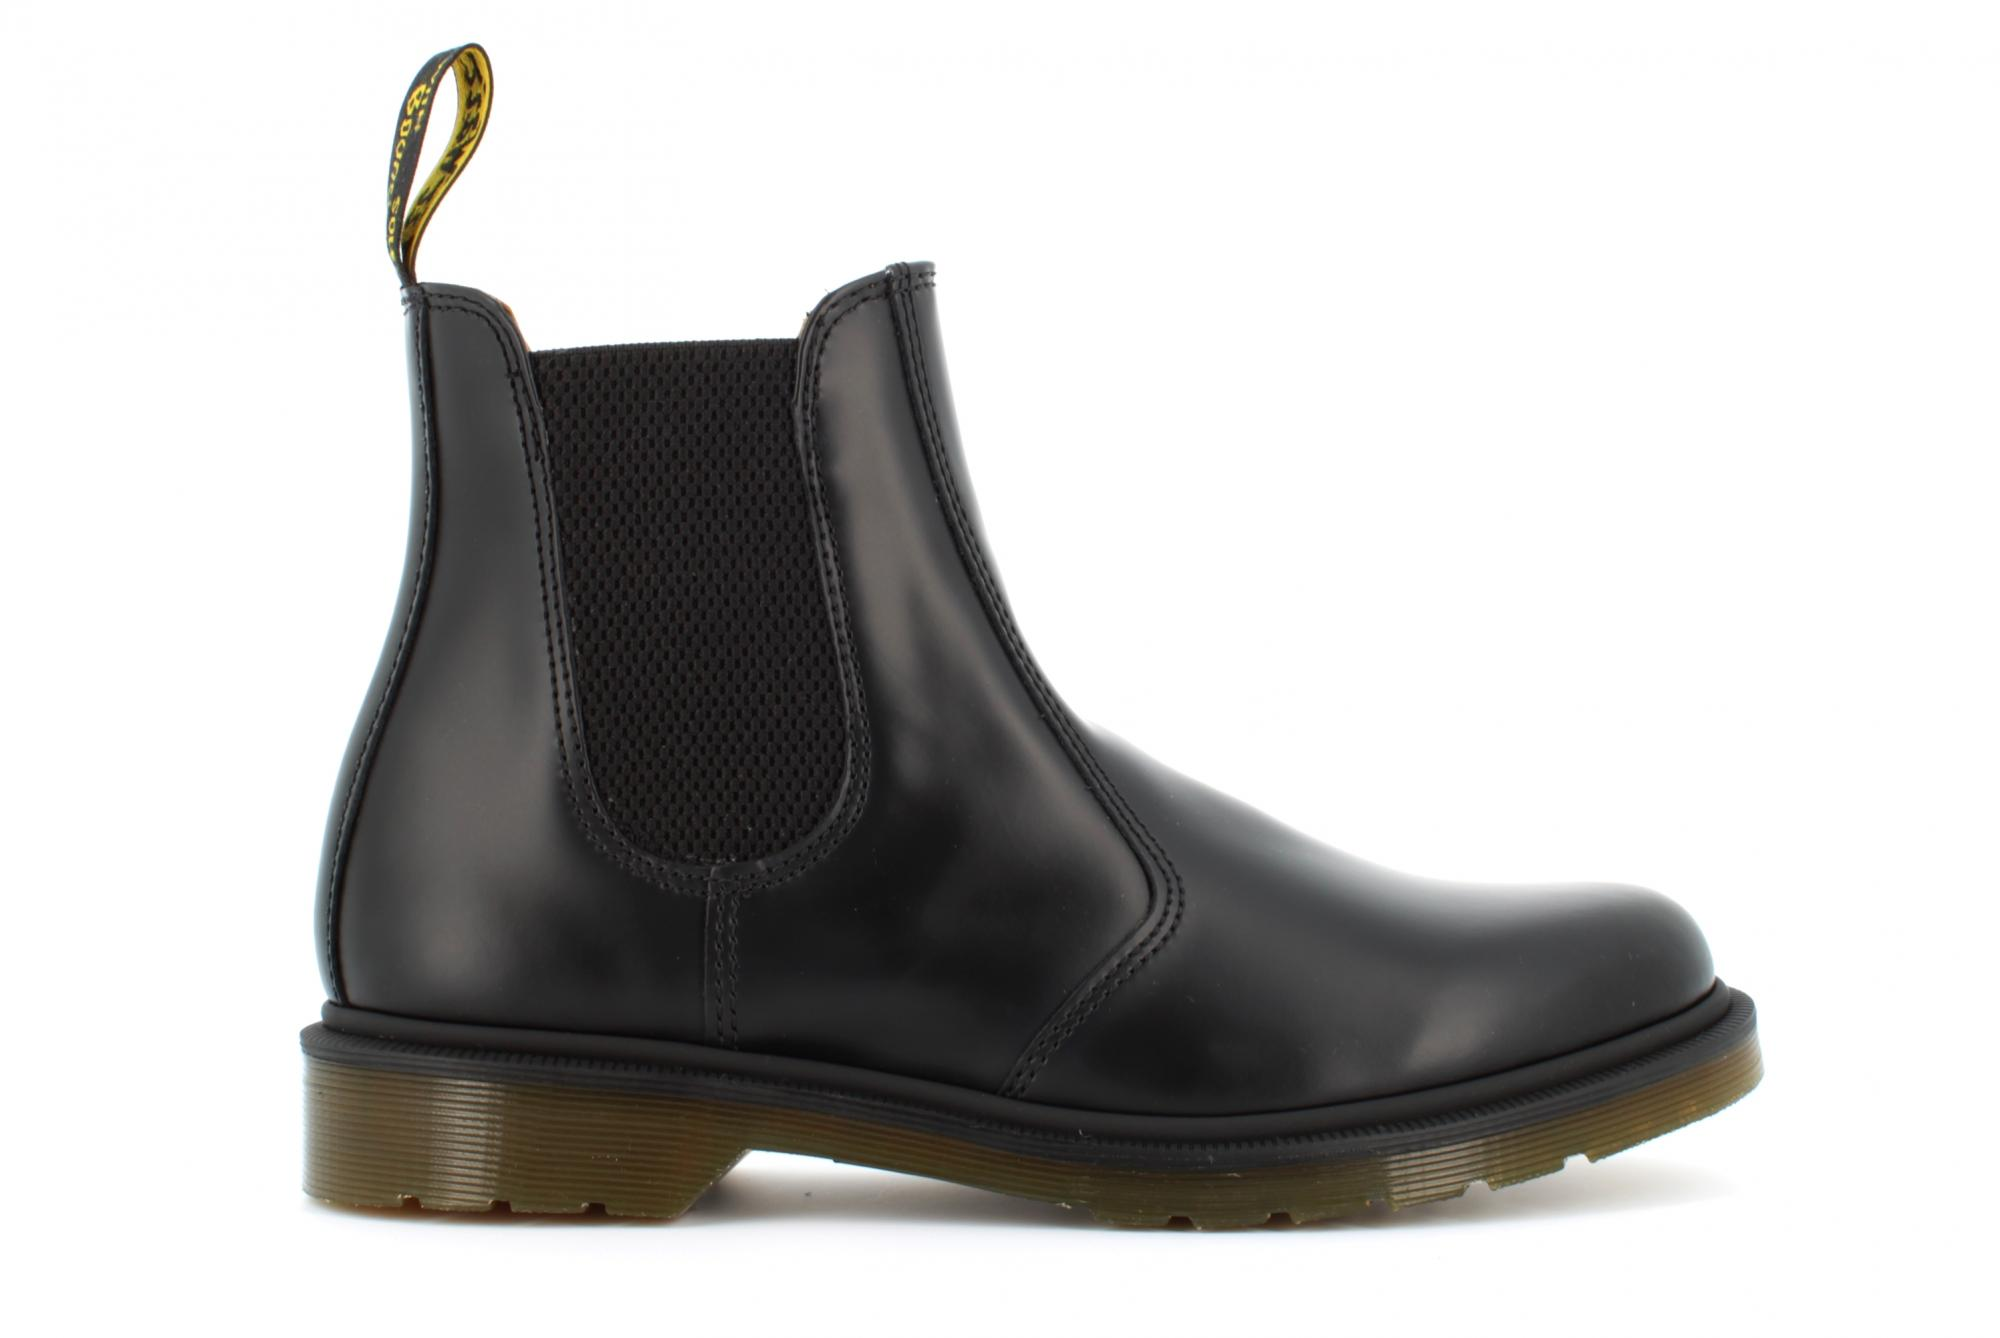 buy popular 40f5c 61382 Details about Dr. Martens A19u unisex shoes ankle boots 10297001 CHELSEA  BOOT SMOOTH